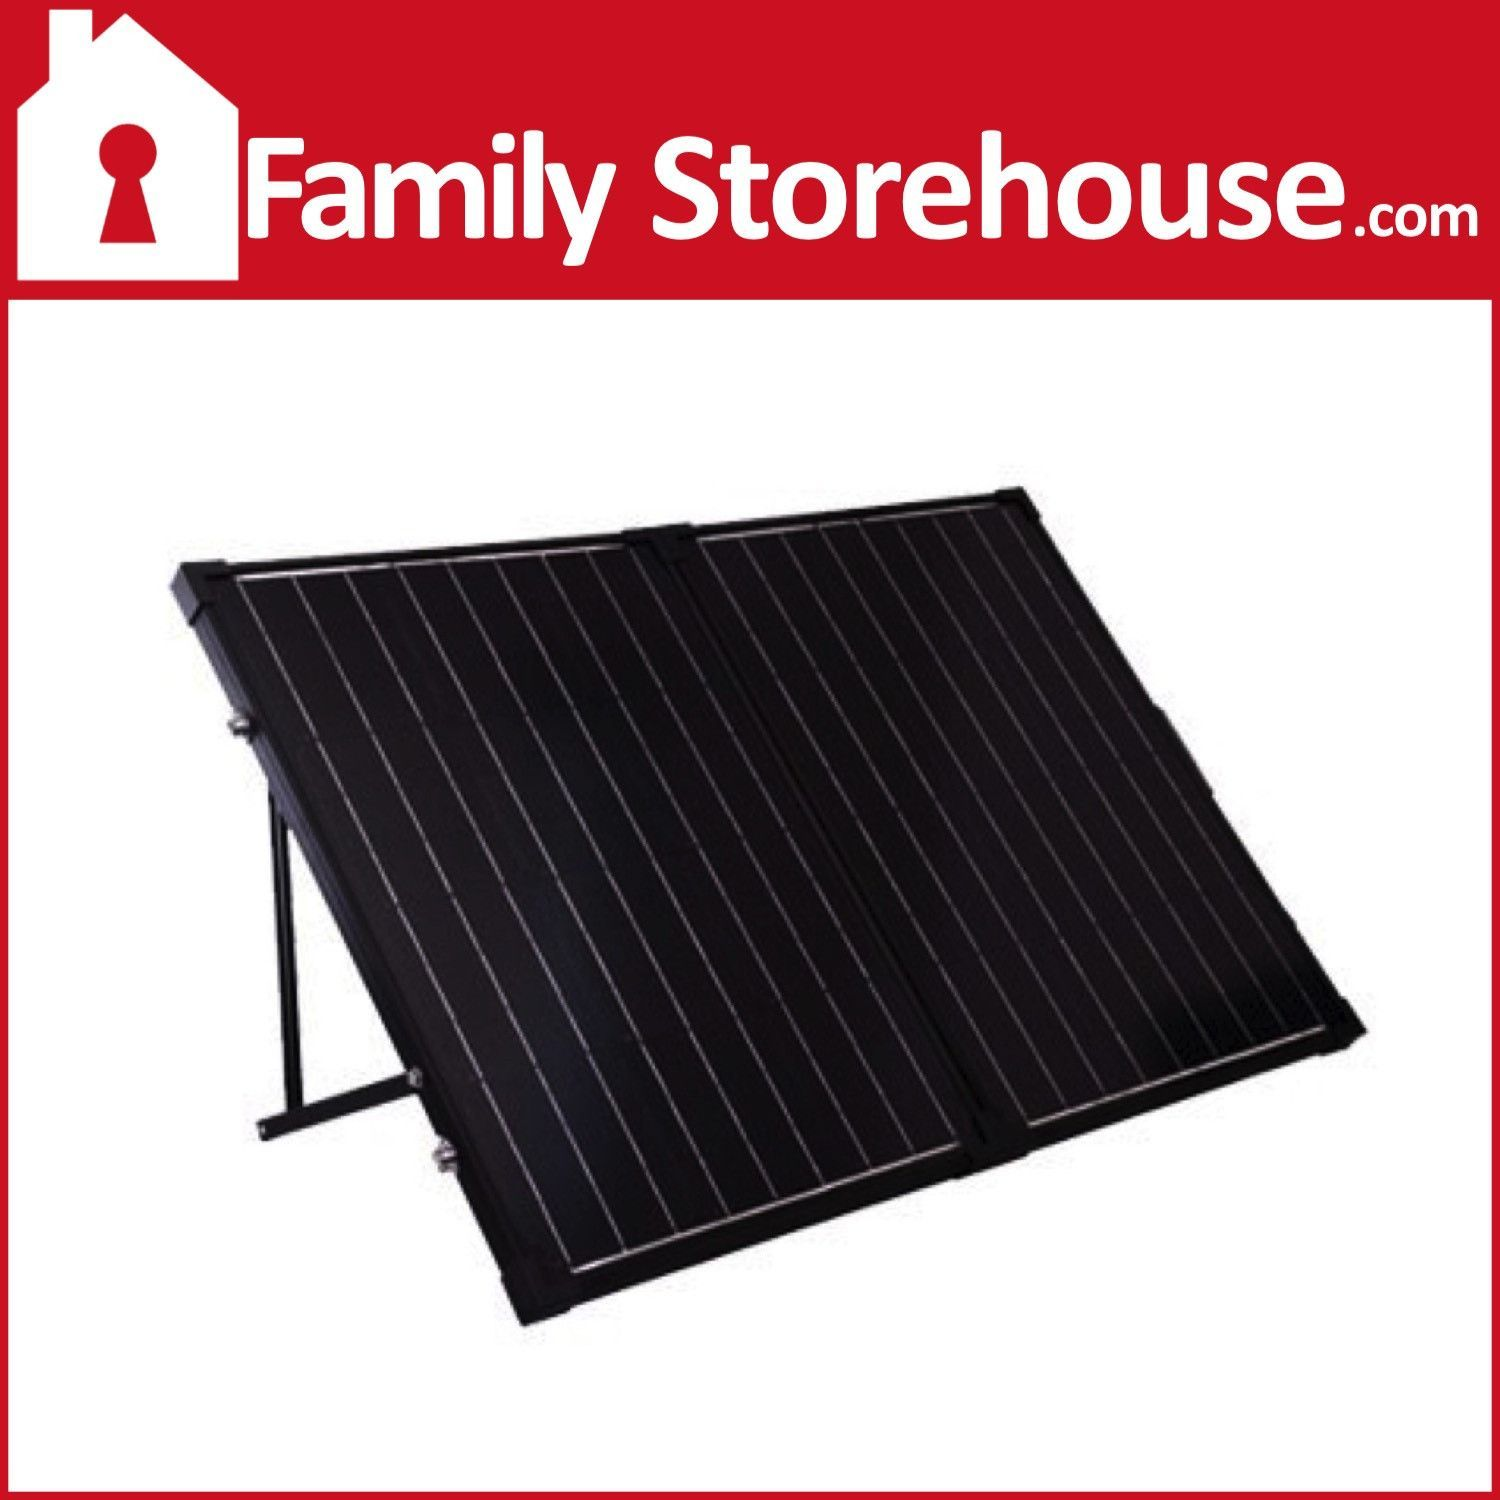 Humless 100 Watt Solar Panel This Is Possibly The Best Solar Panel Available On The Market If You Want The Best Look Solar Panels Solar 100 Watt Solar Panel